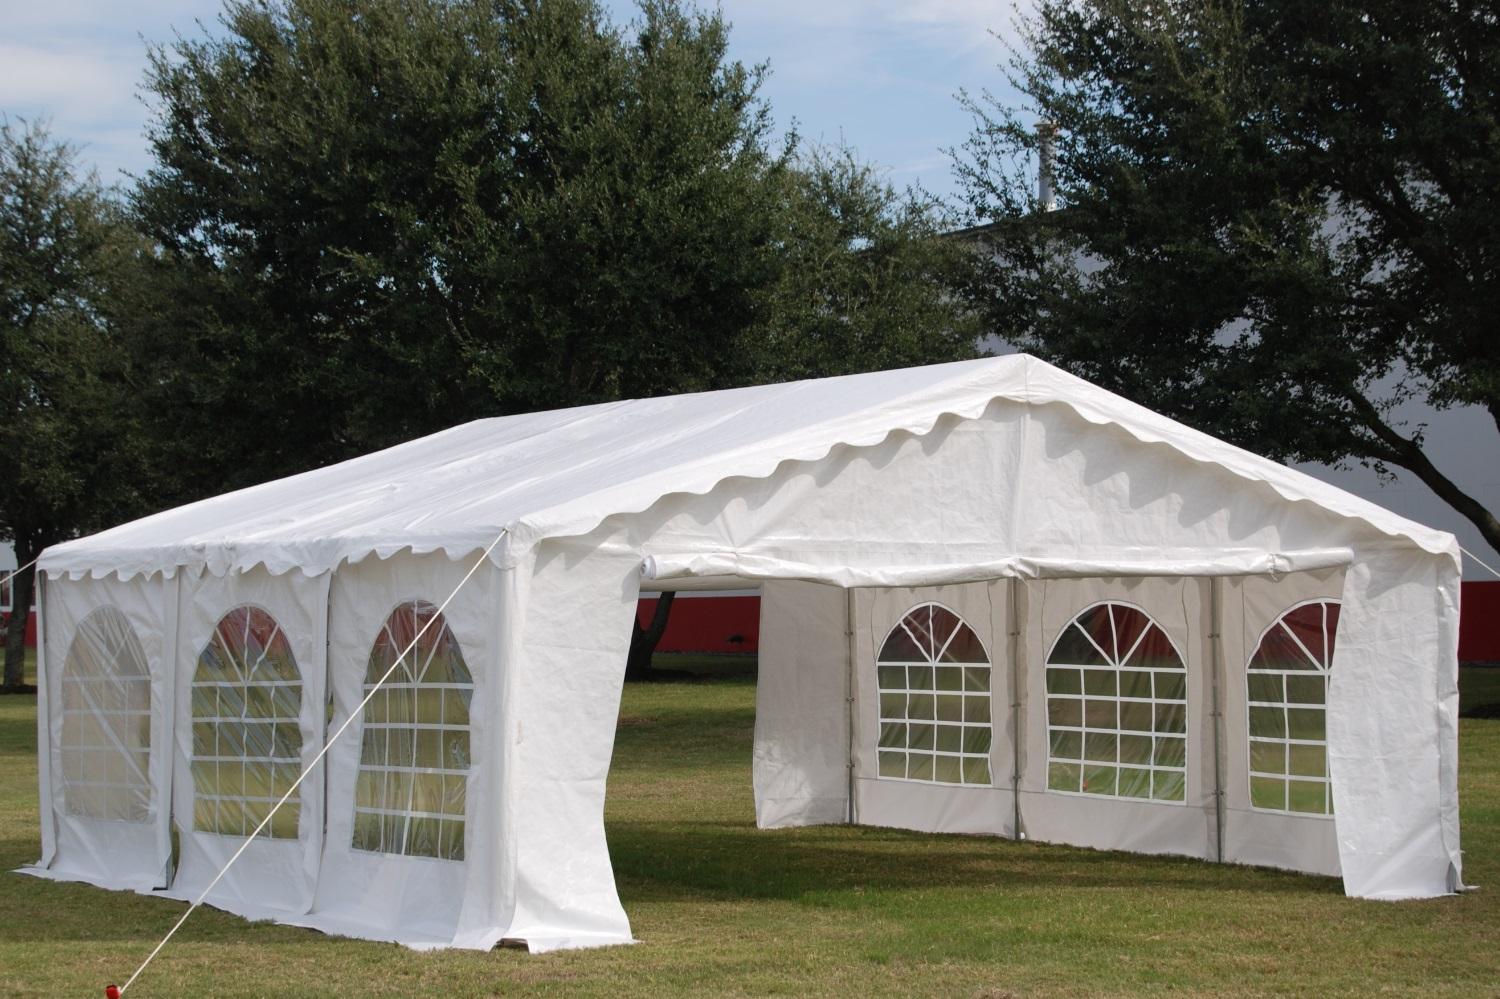 20'x20' Budget PE Party Tent Canopy Shelter By DELTA Canopies by WPIC